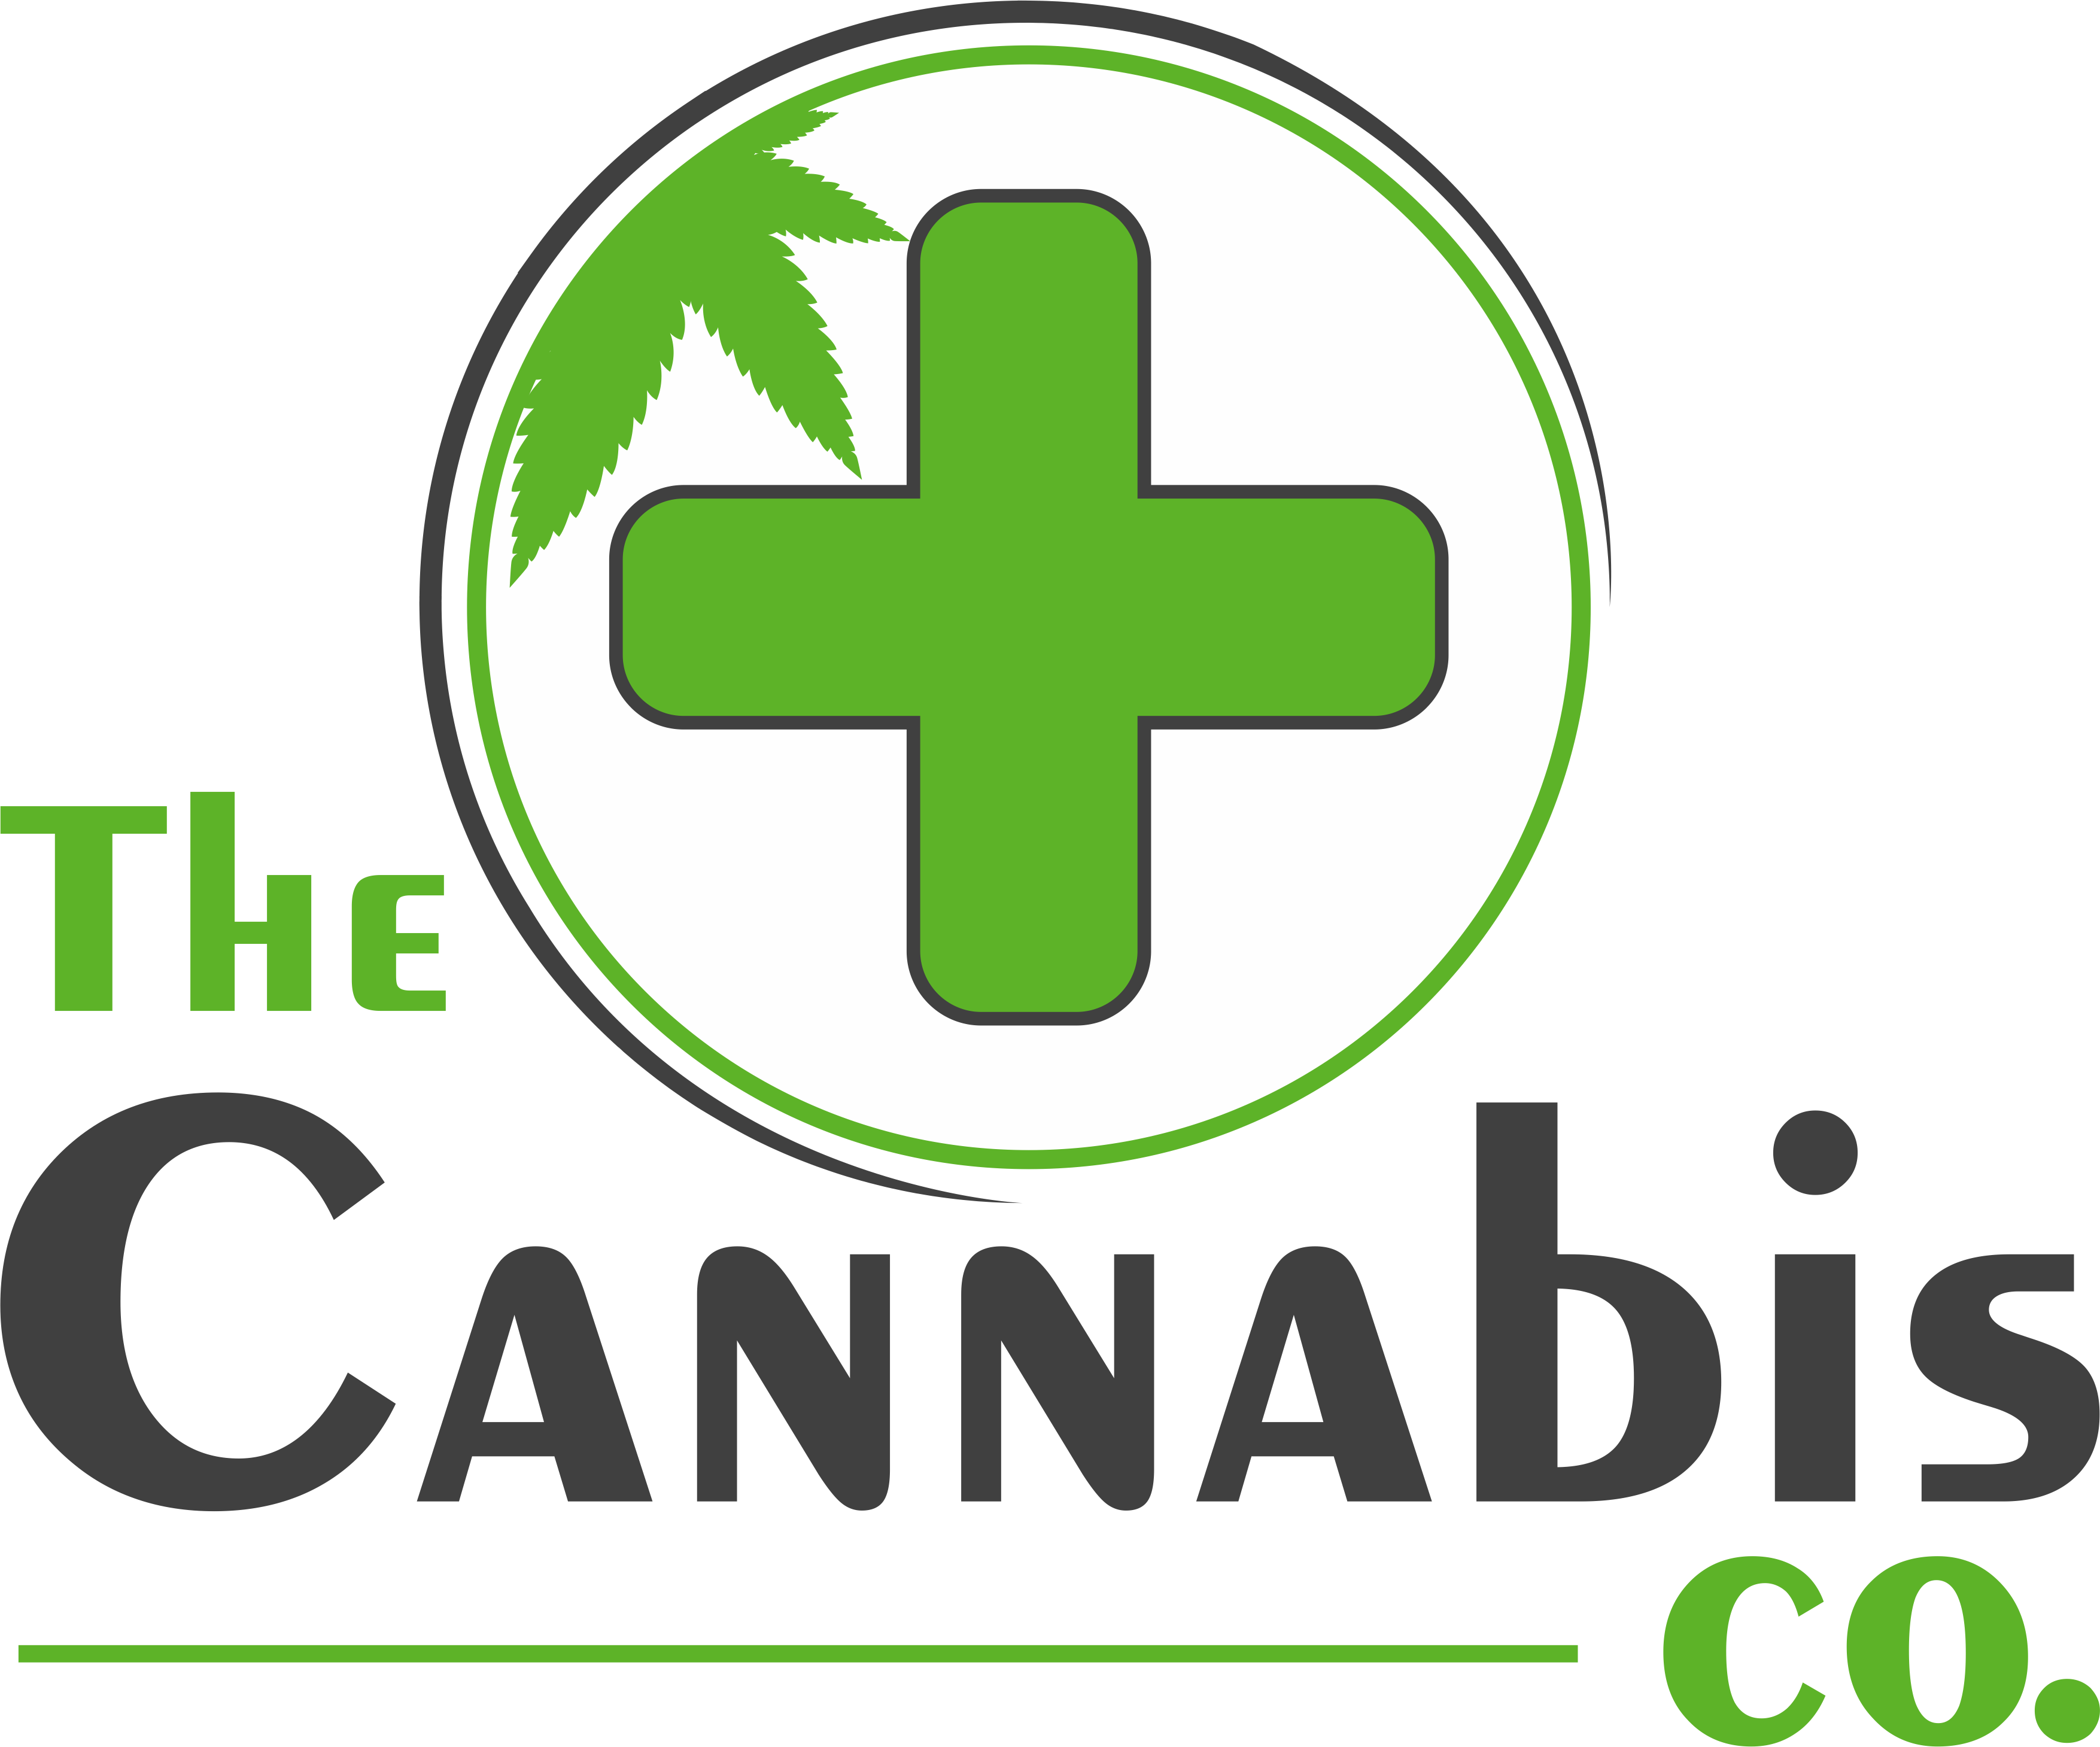 The Cannabis Co.